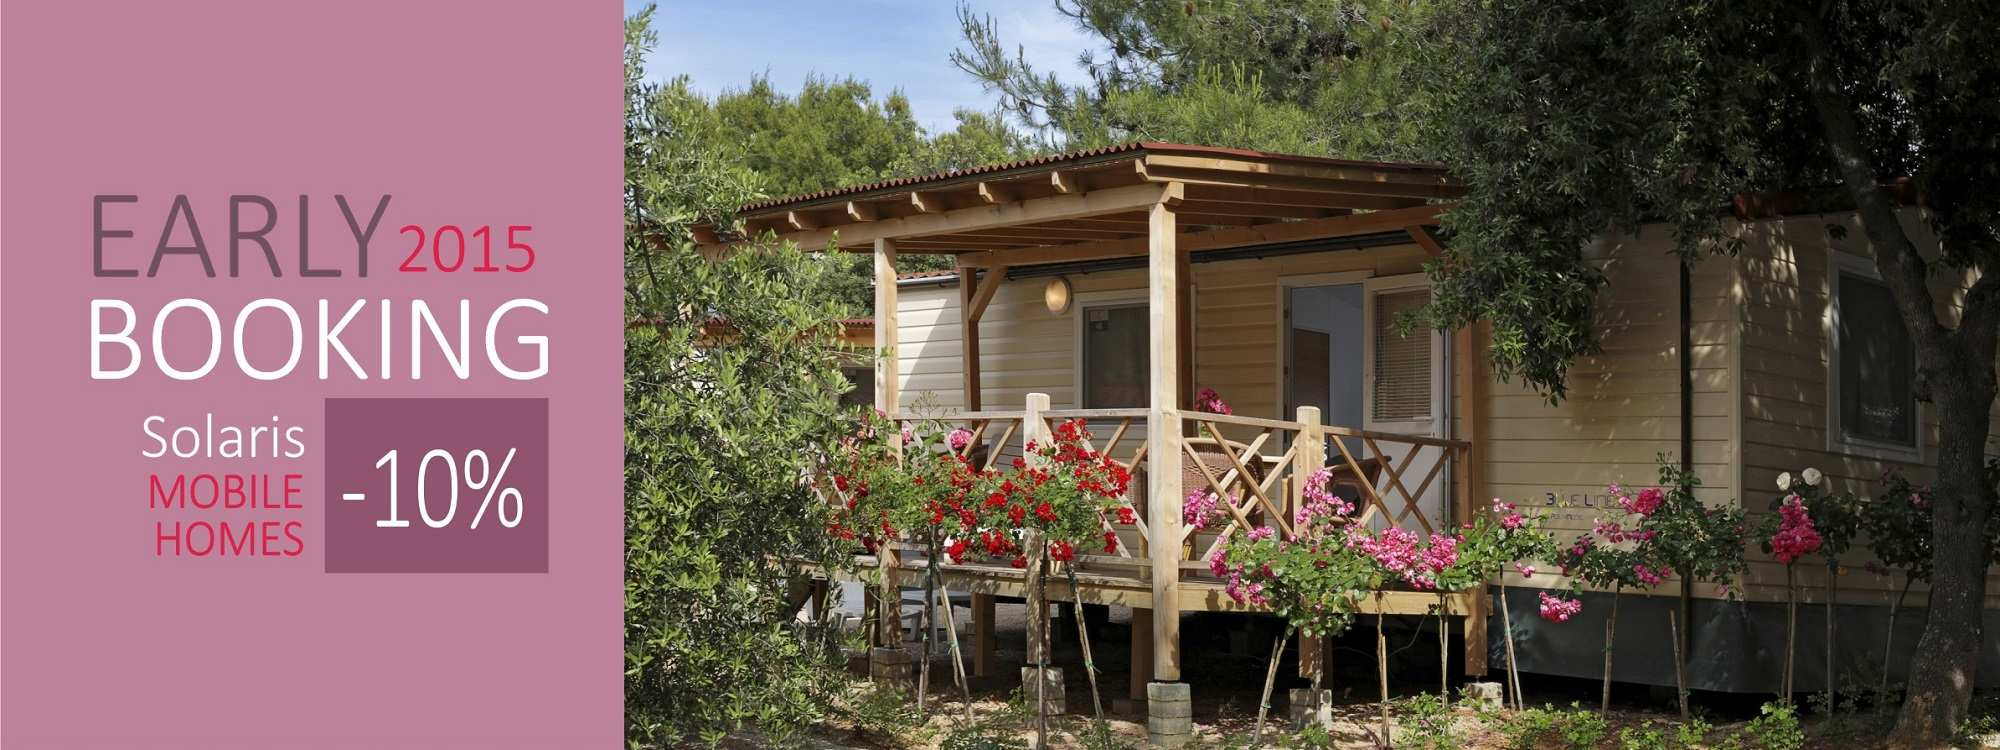 Early_booking_offer_2015_mobile_homes_solaris_camping_beach_resort_croatia_special_offer